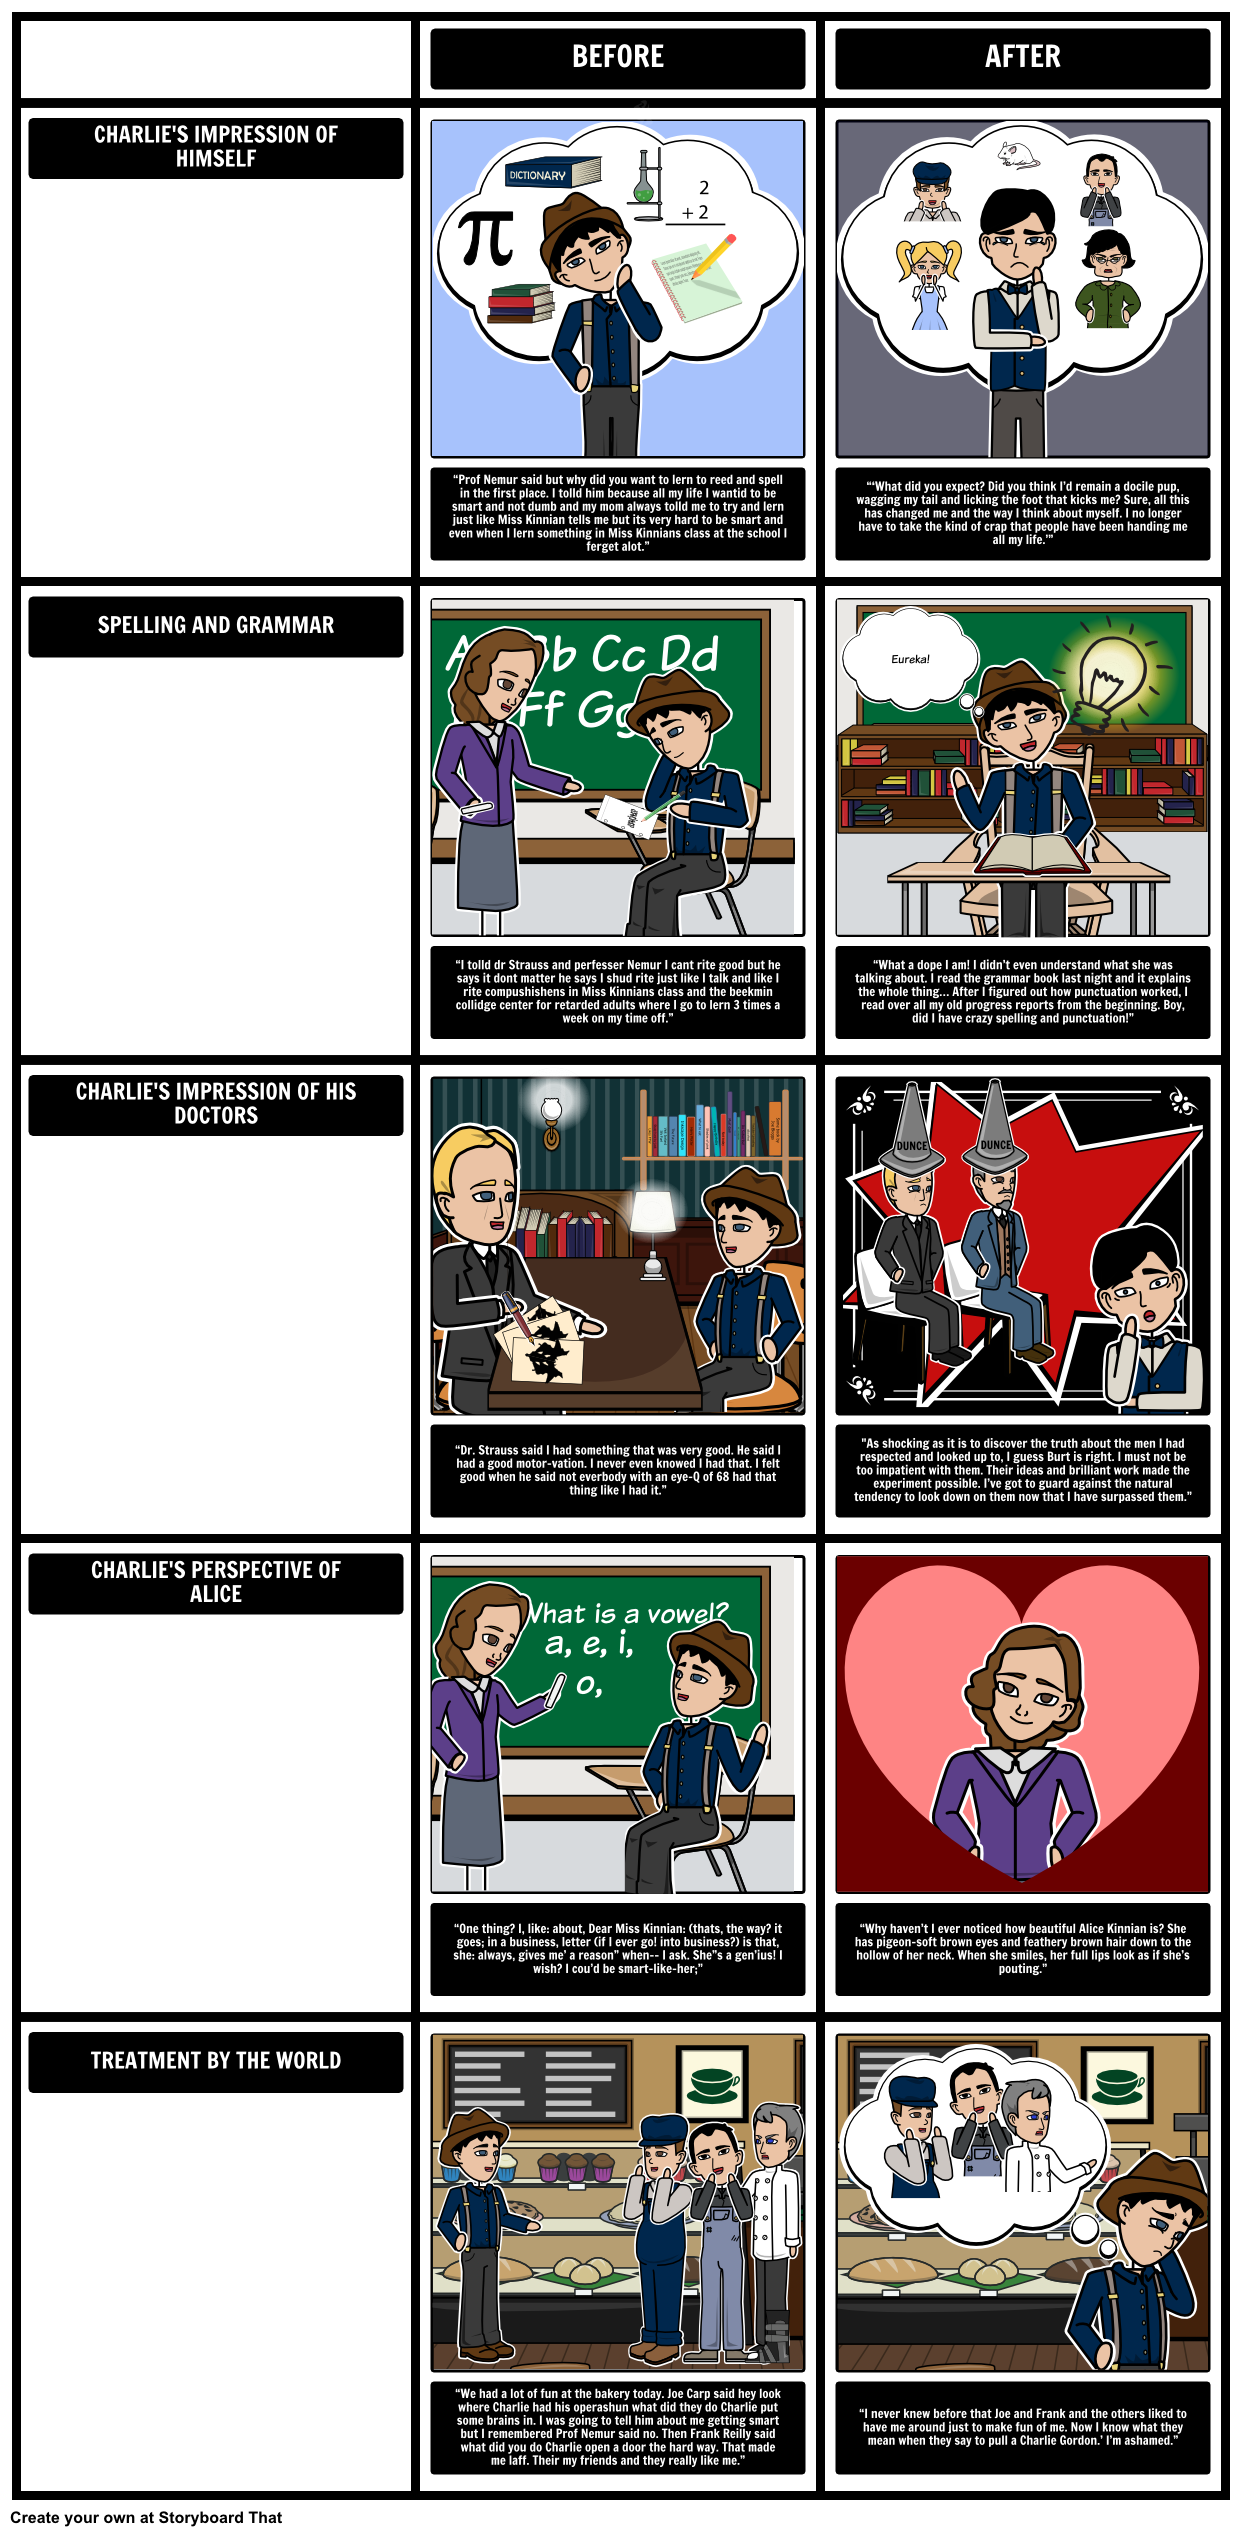 flowers for algernon themes symbols and motifs in this flowers for algernon summary theme and analysis about short story and novel by daniel keyes includes plot diagram character development and other online